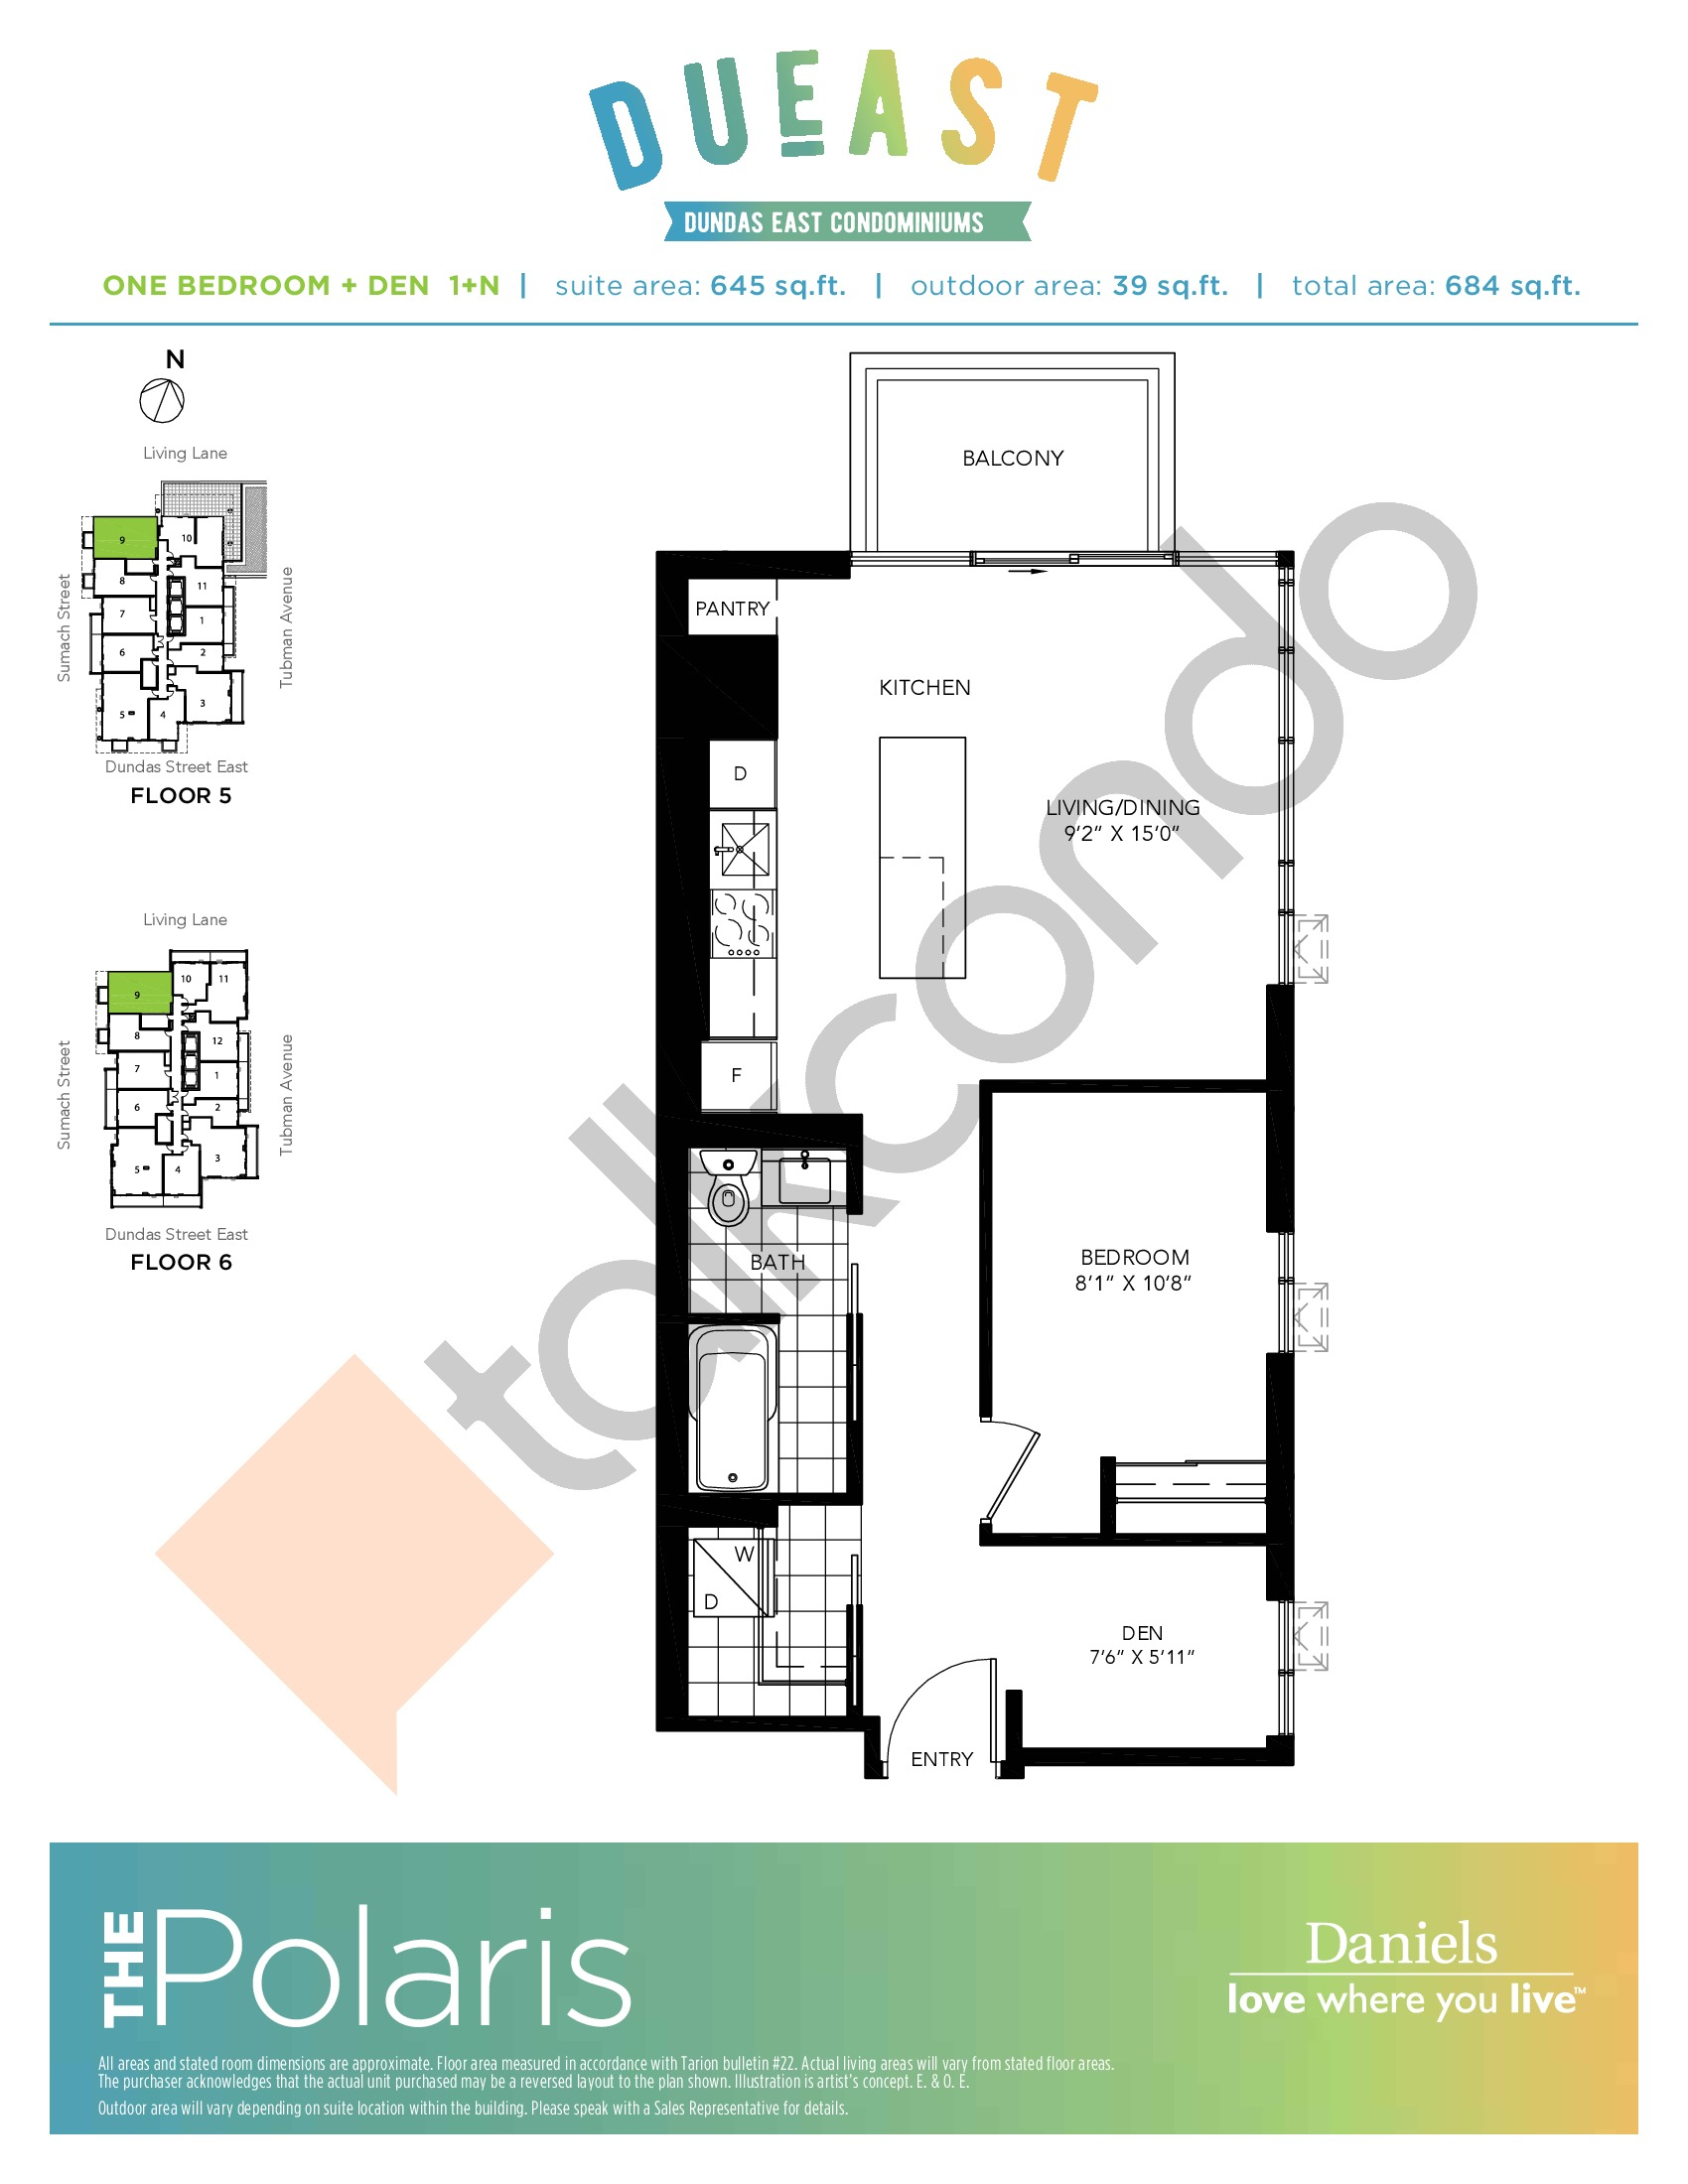 The Polaris (1+N) Floor Plan at DuEast Condos - 645 sq.ft